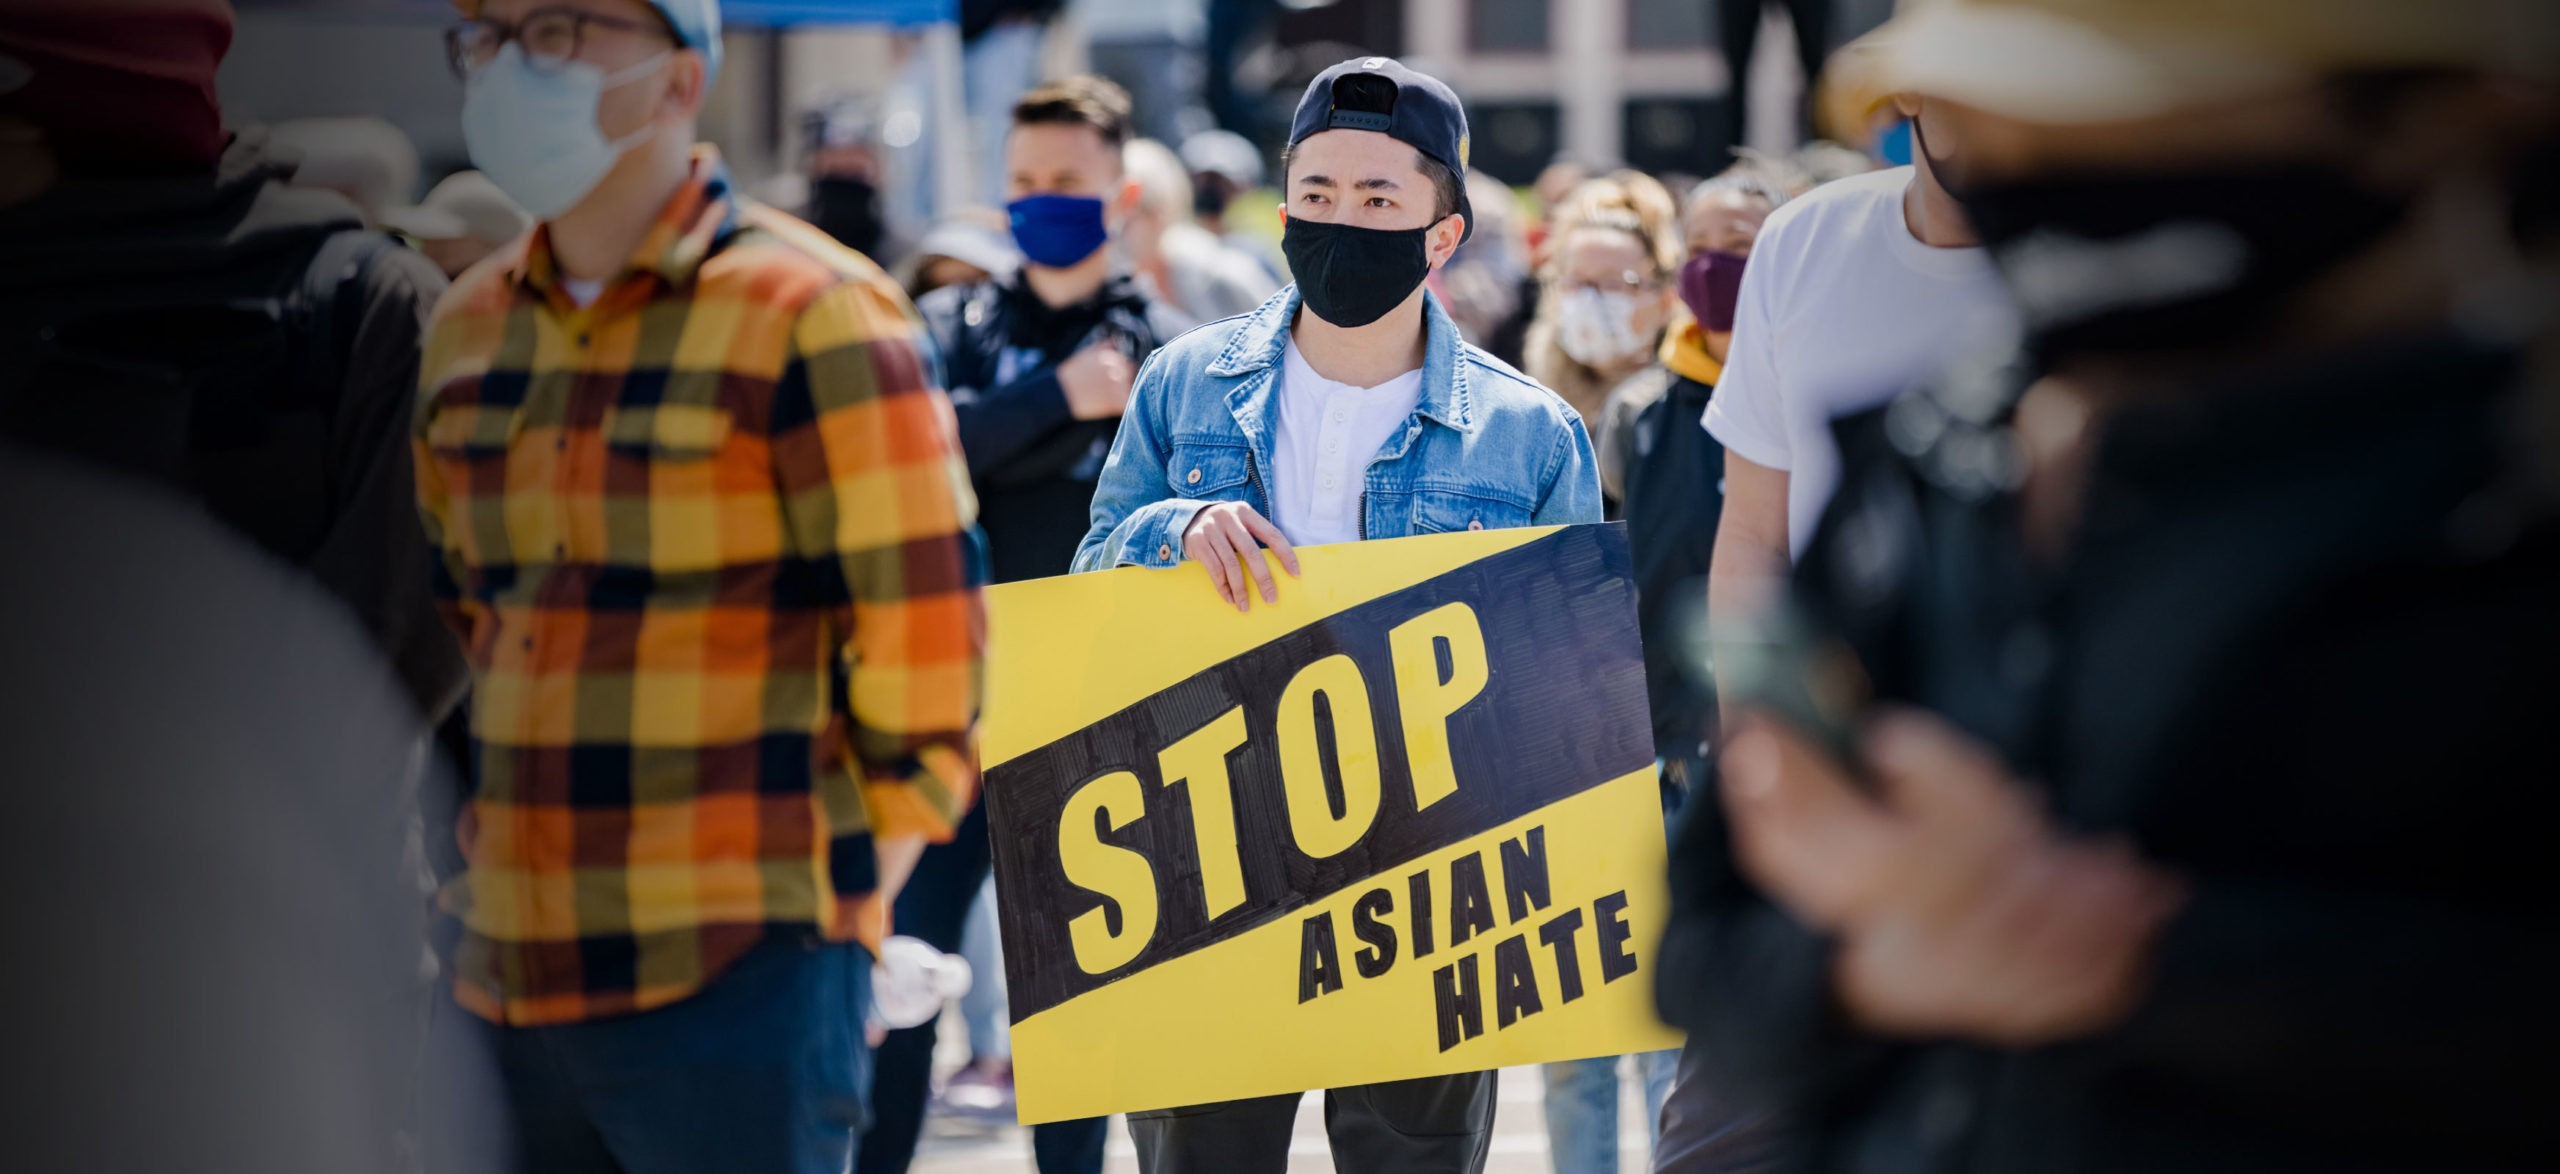 A man holds a #StopAsianHate sign at a large rally